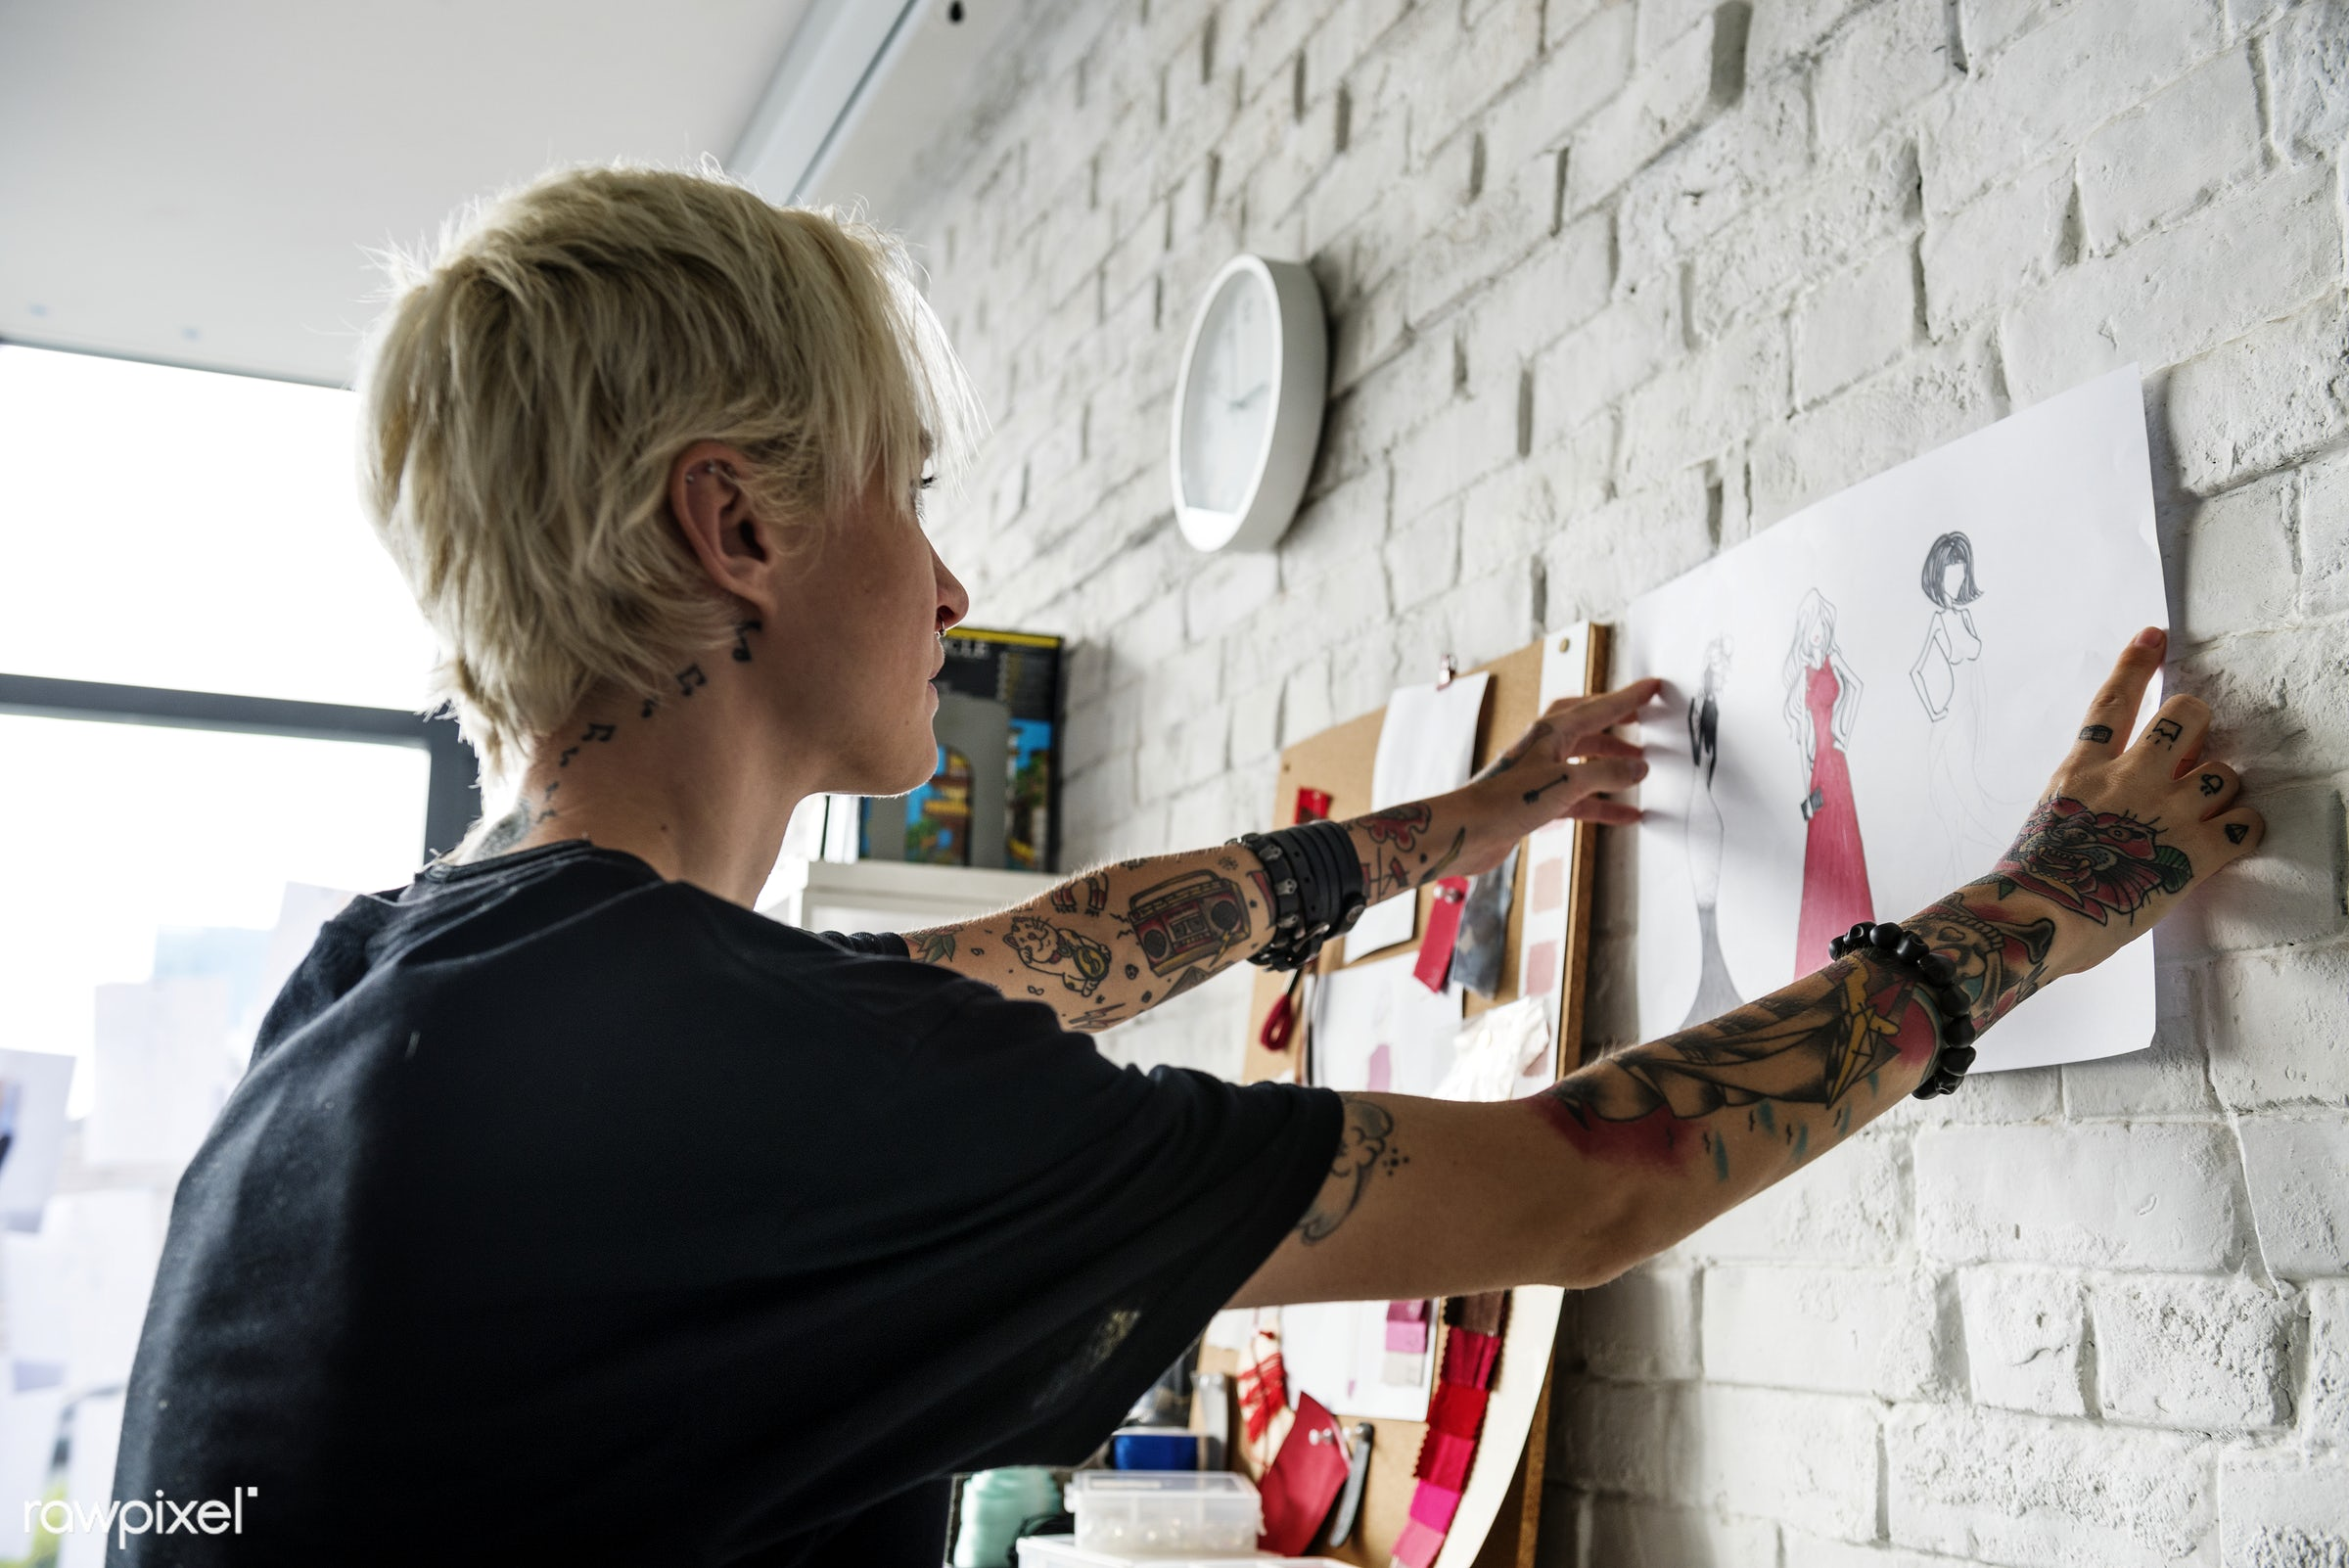 Fashion designer working in a studio - beauty, blond, board, clothes, clothing, clothings, craft, creative, designer, detail...